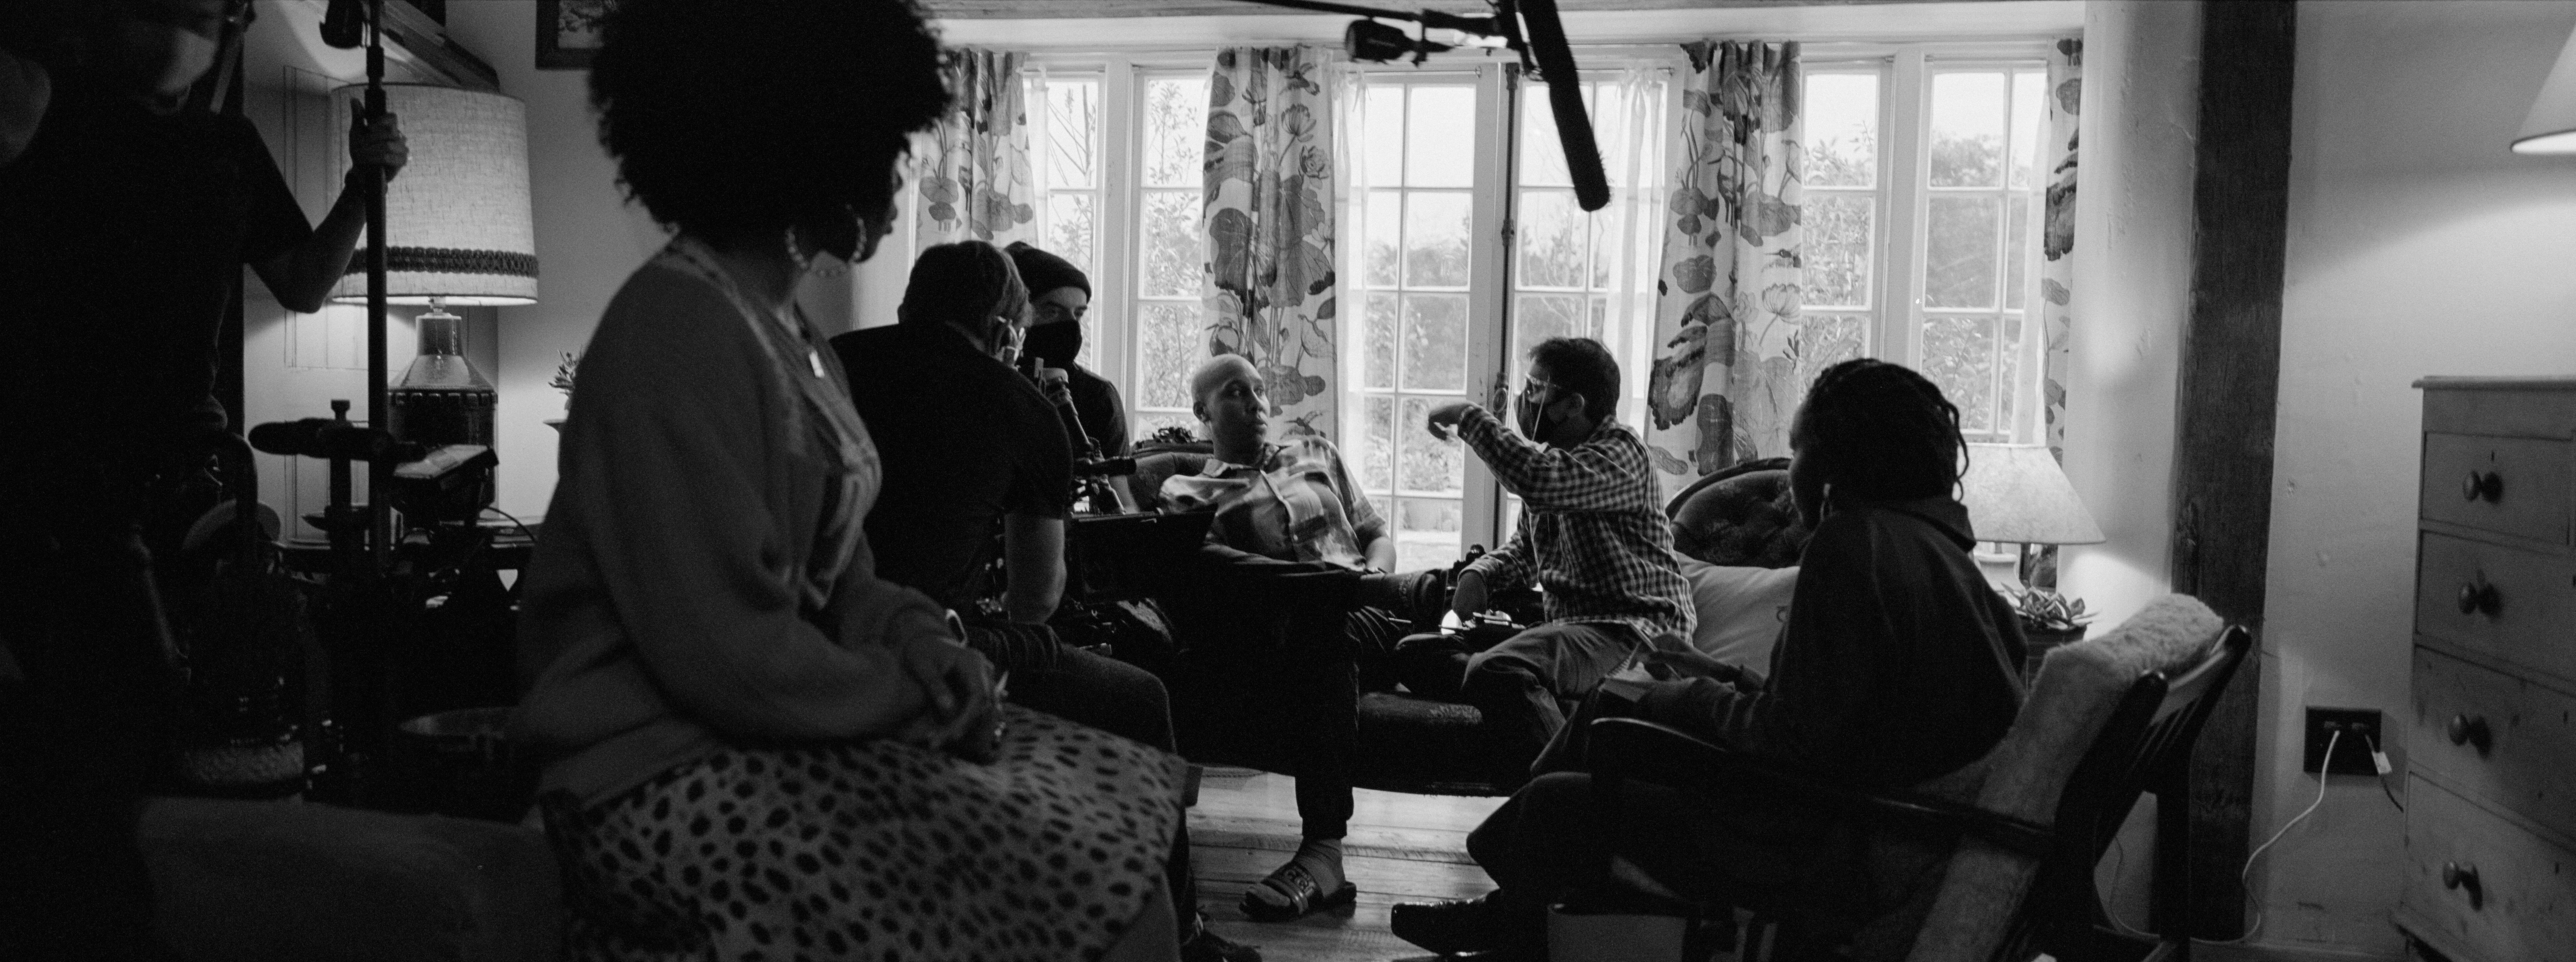 MASTER OF NONE S3 (L to R) LENA WAITHE as DENISE and Director AZIZ ANSARI of MASTER OF NONE Cr. PAUL SALLENT/NETFLIX © 2021